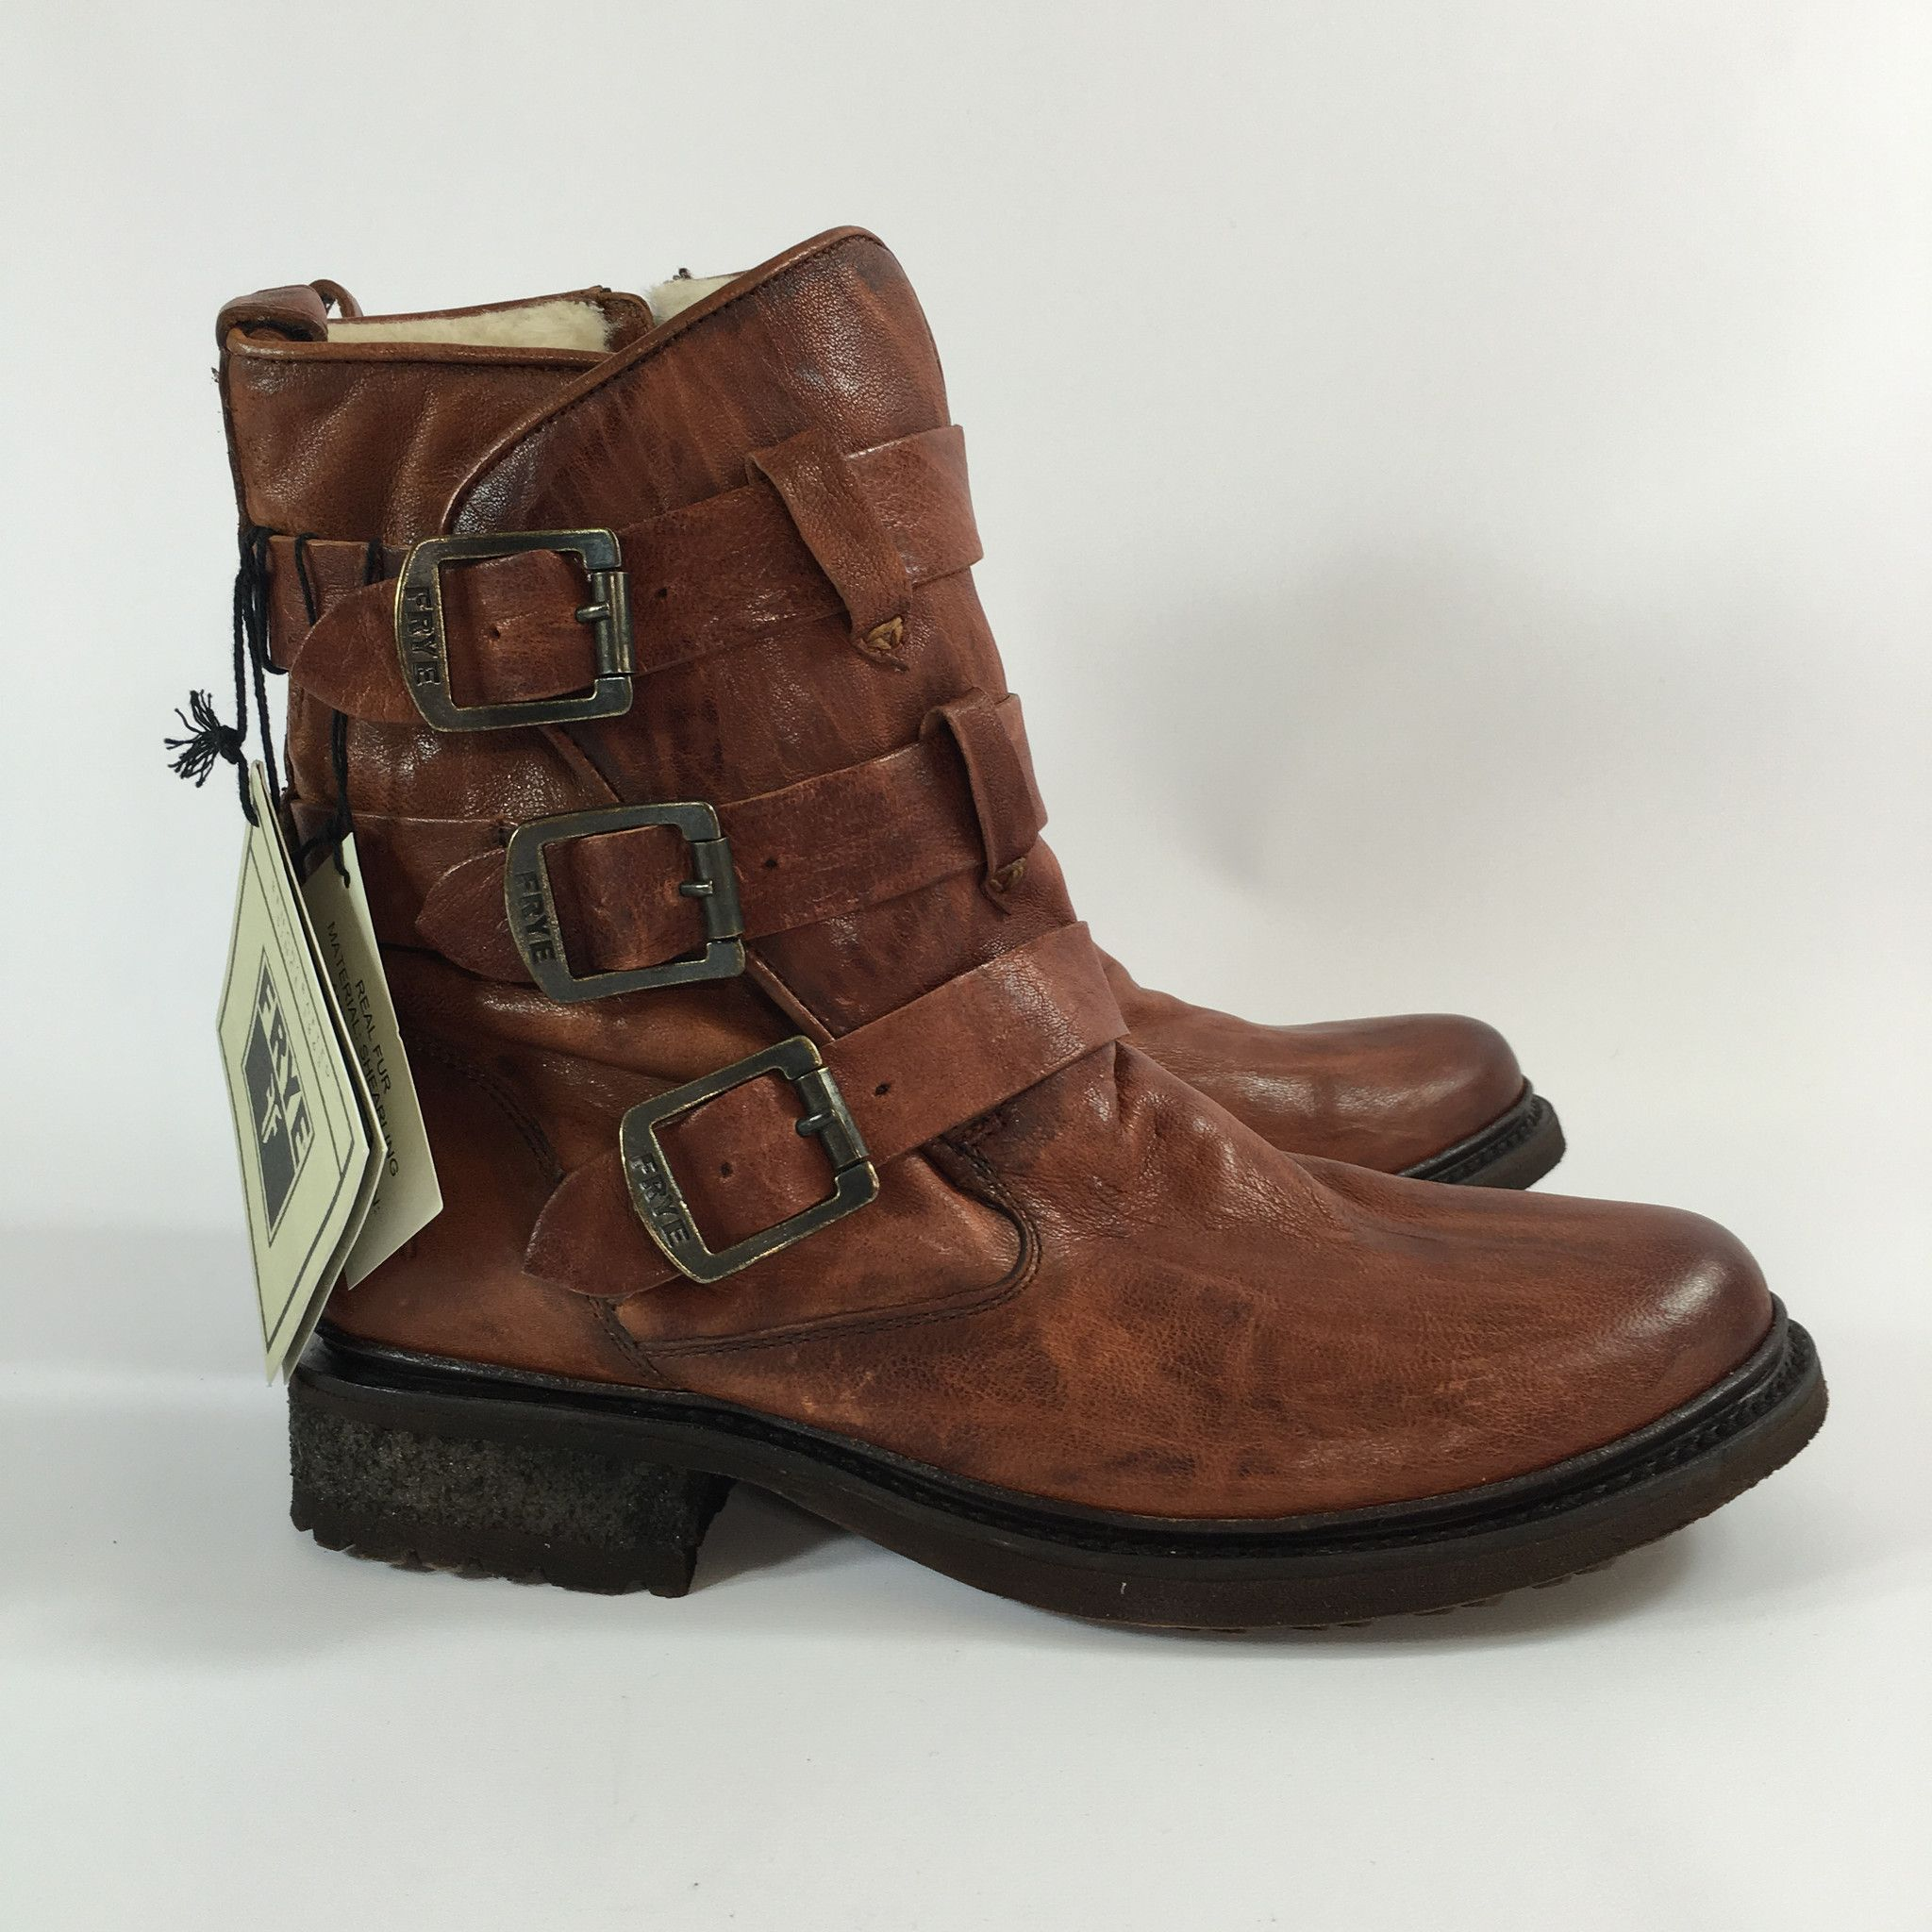 Frye Lindsay Leather Plate Boot | Boots, Frye boots, Leather